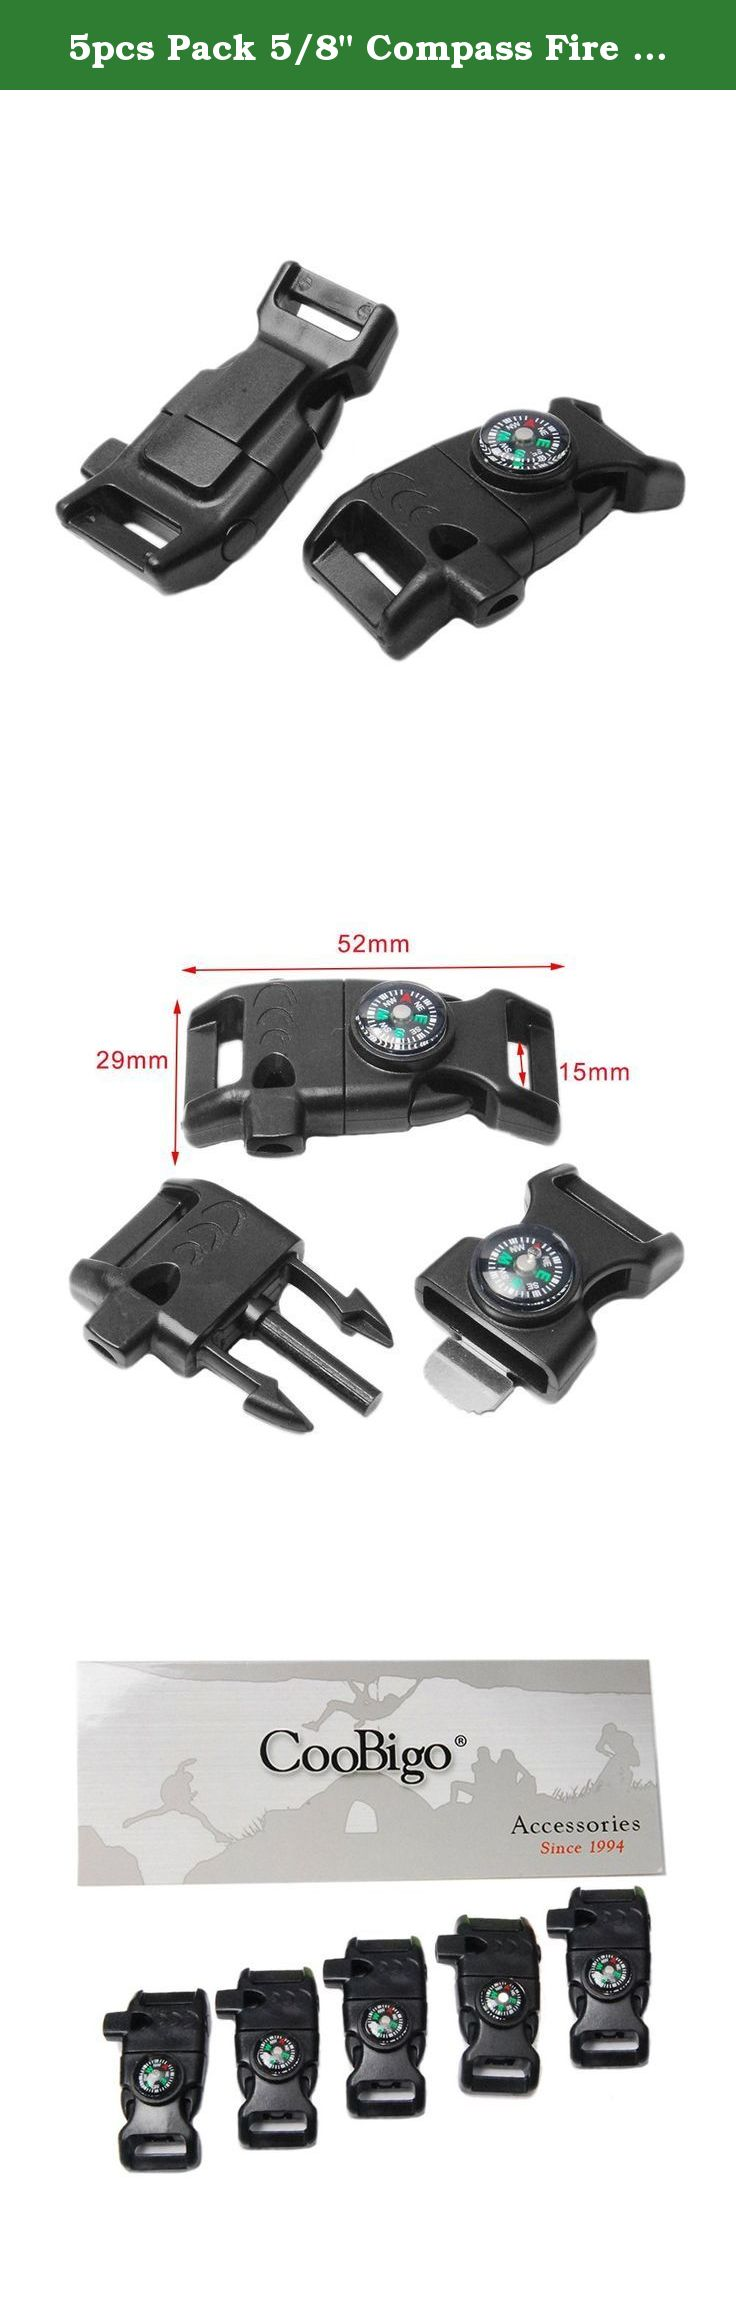 "5pcs Pack 5/8"" Compass Fire Starter Whistle Buckle"